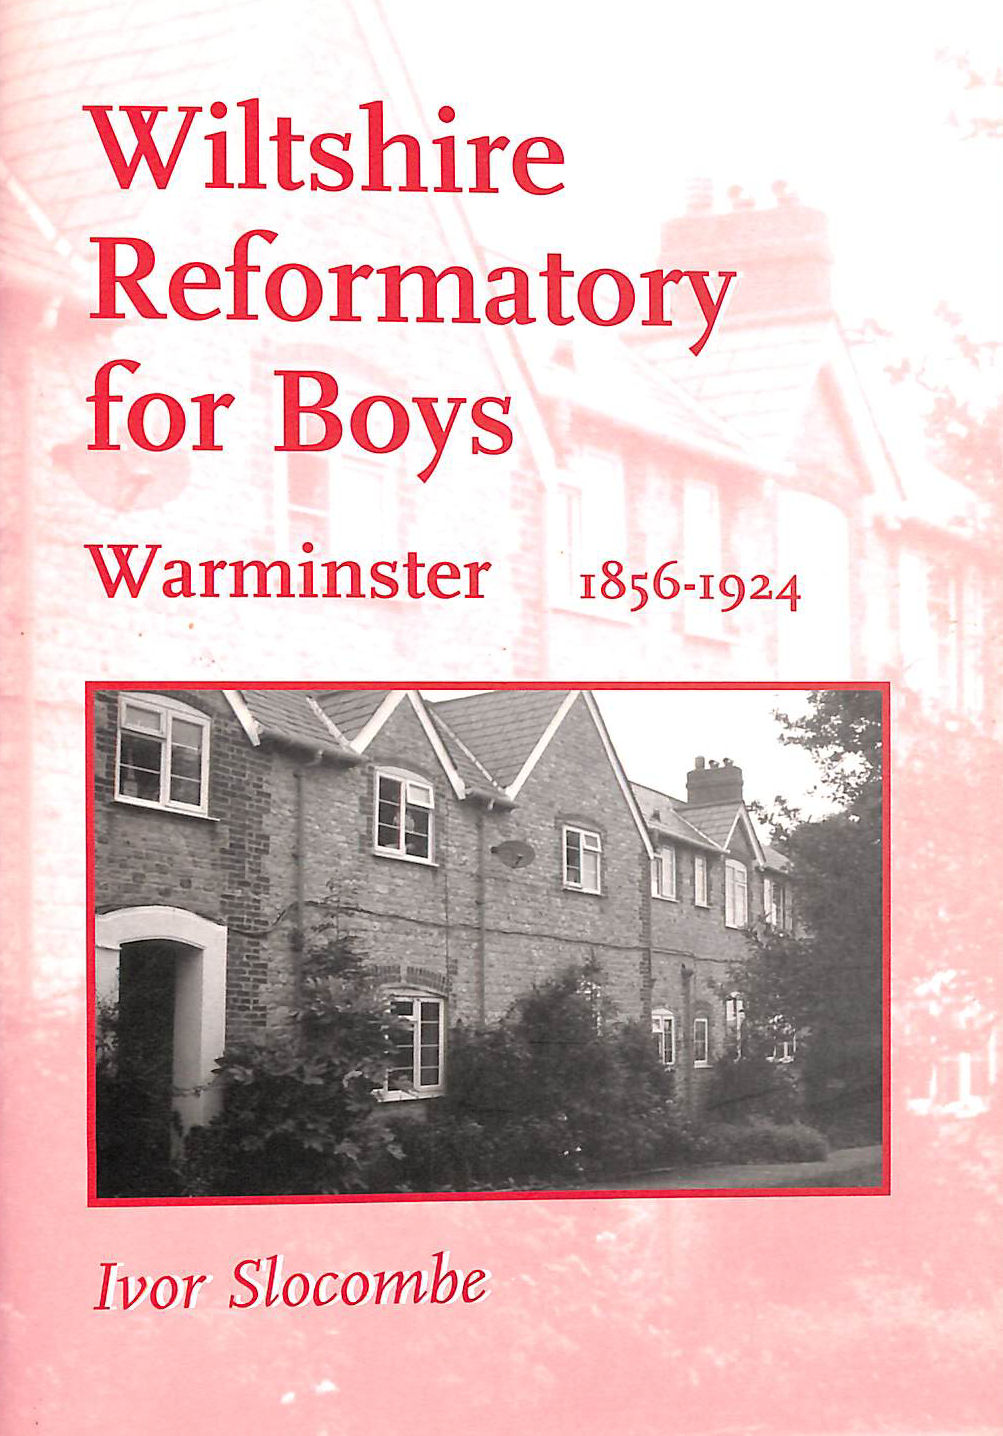 Image for Wiltshire Reformatory for Boys, Warminster, 1856-1924